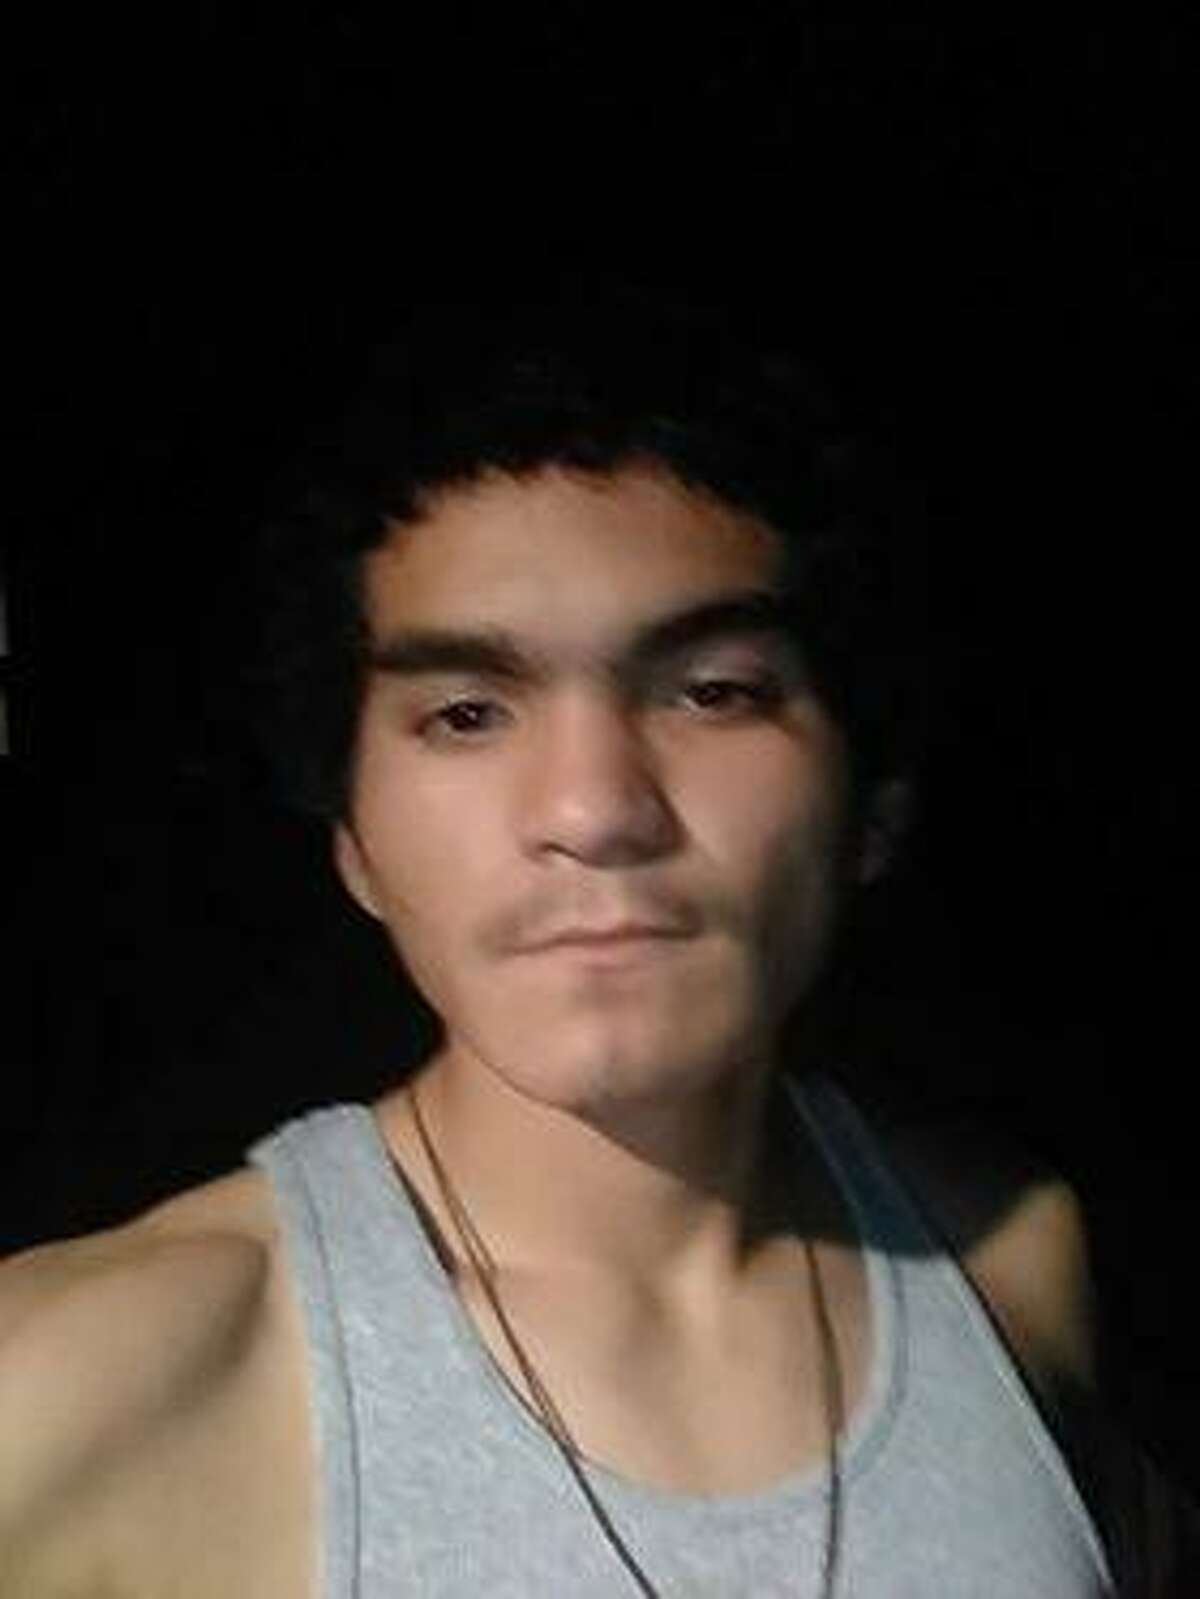 Jose Centeno Jr., 17, died on Oct. 31, 2018 following a car chase with Harris County Sheriff's deputies.